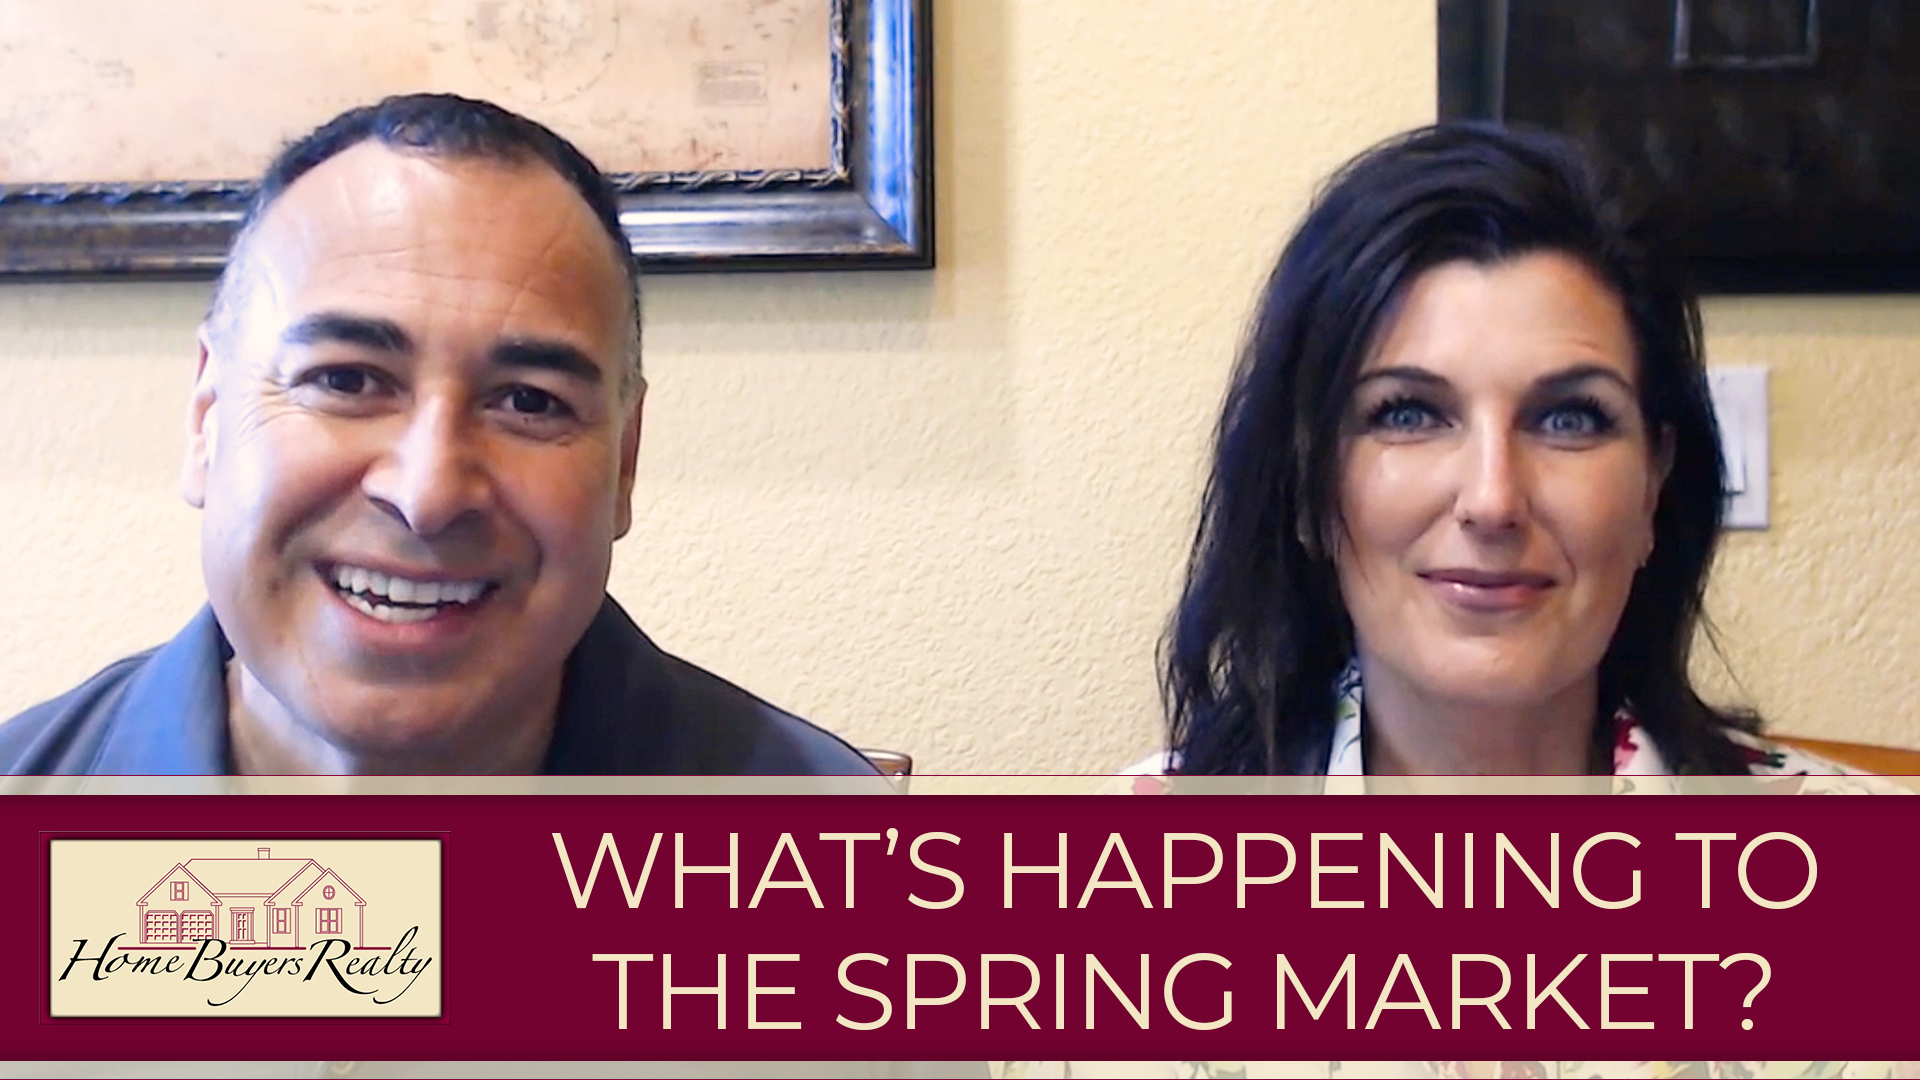 Will There Be a Spring Market?